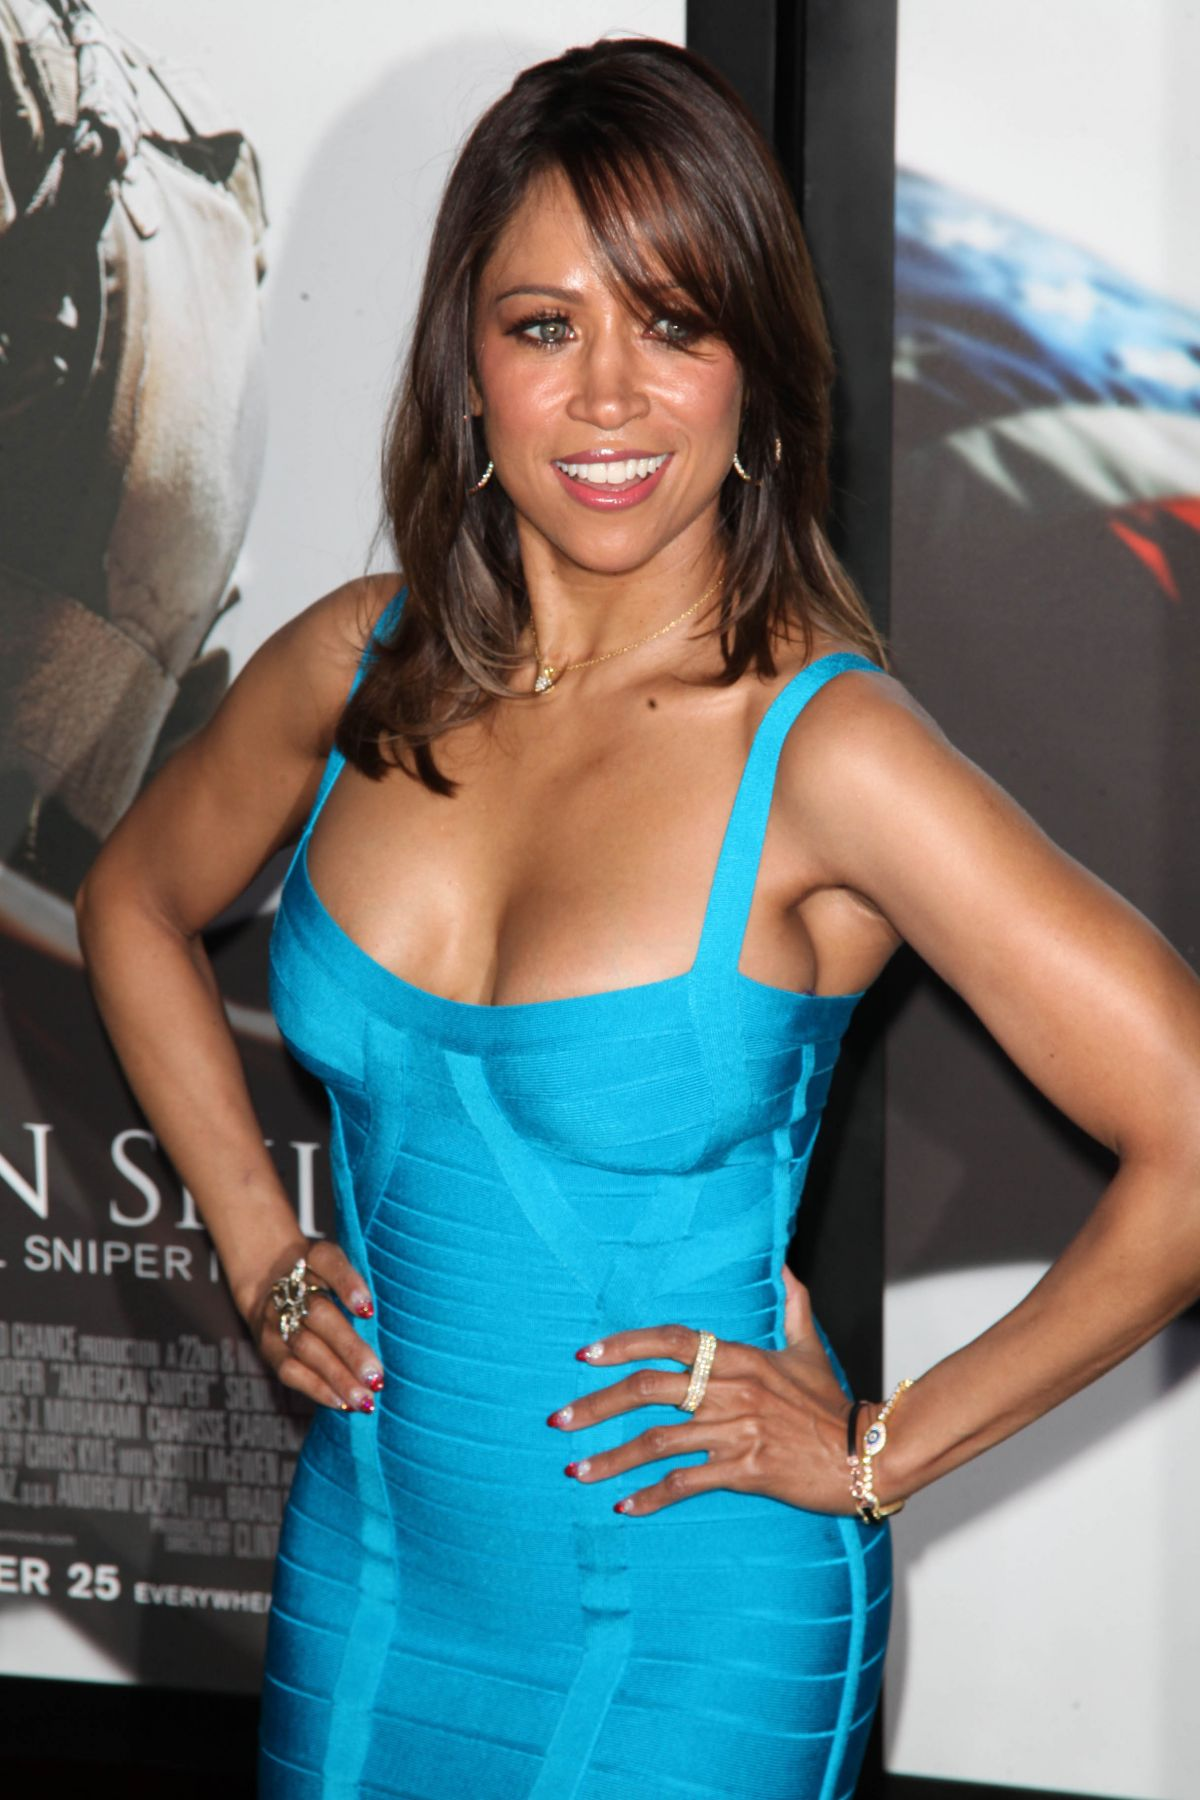 Stacey Dash Hottest Pictures & Spicy Bikini Pics You Can't